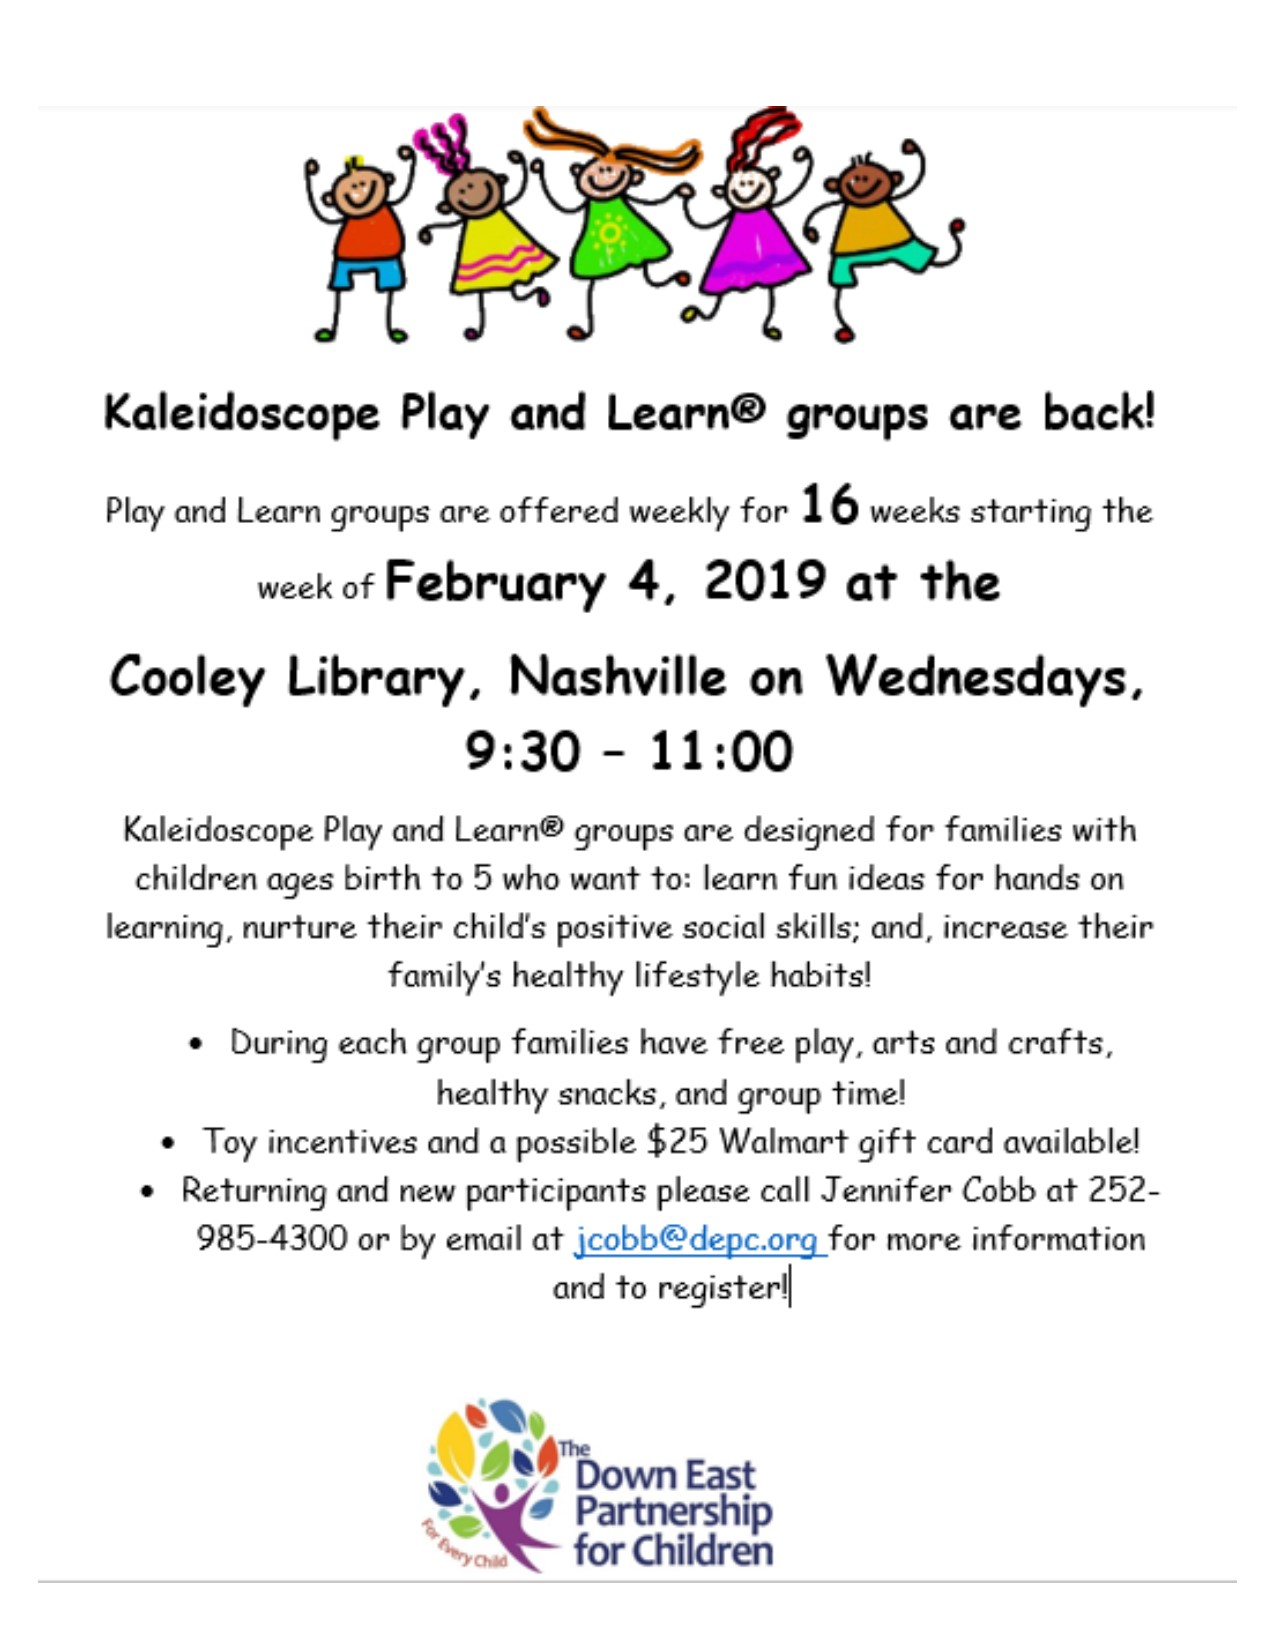 Kaleidoscope Play and Learn Playgroup information